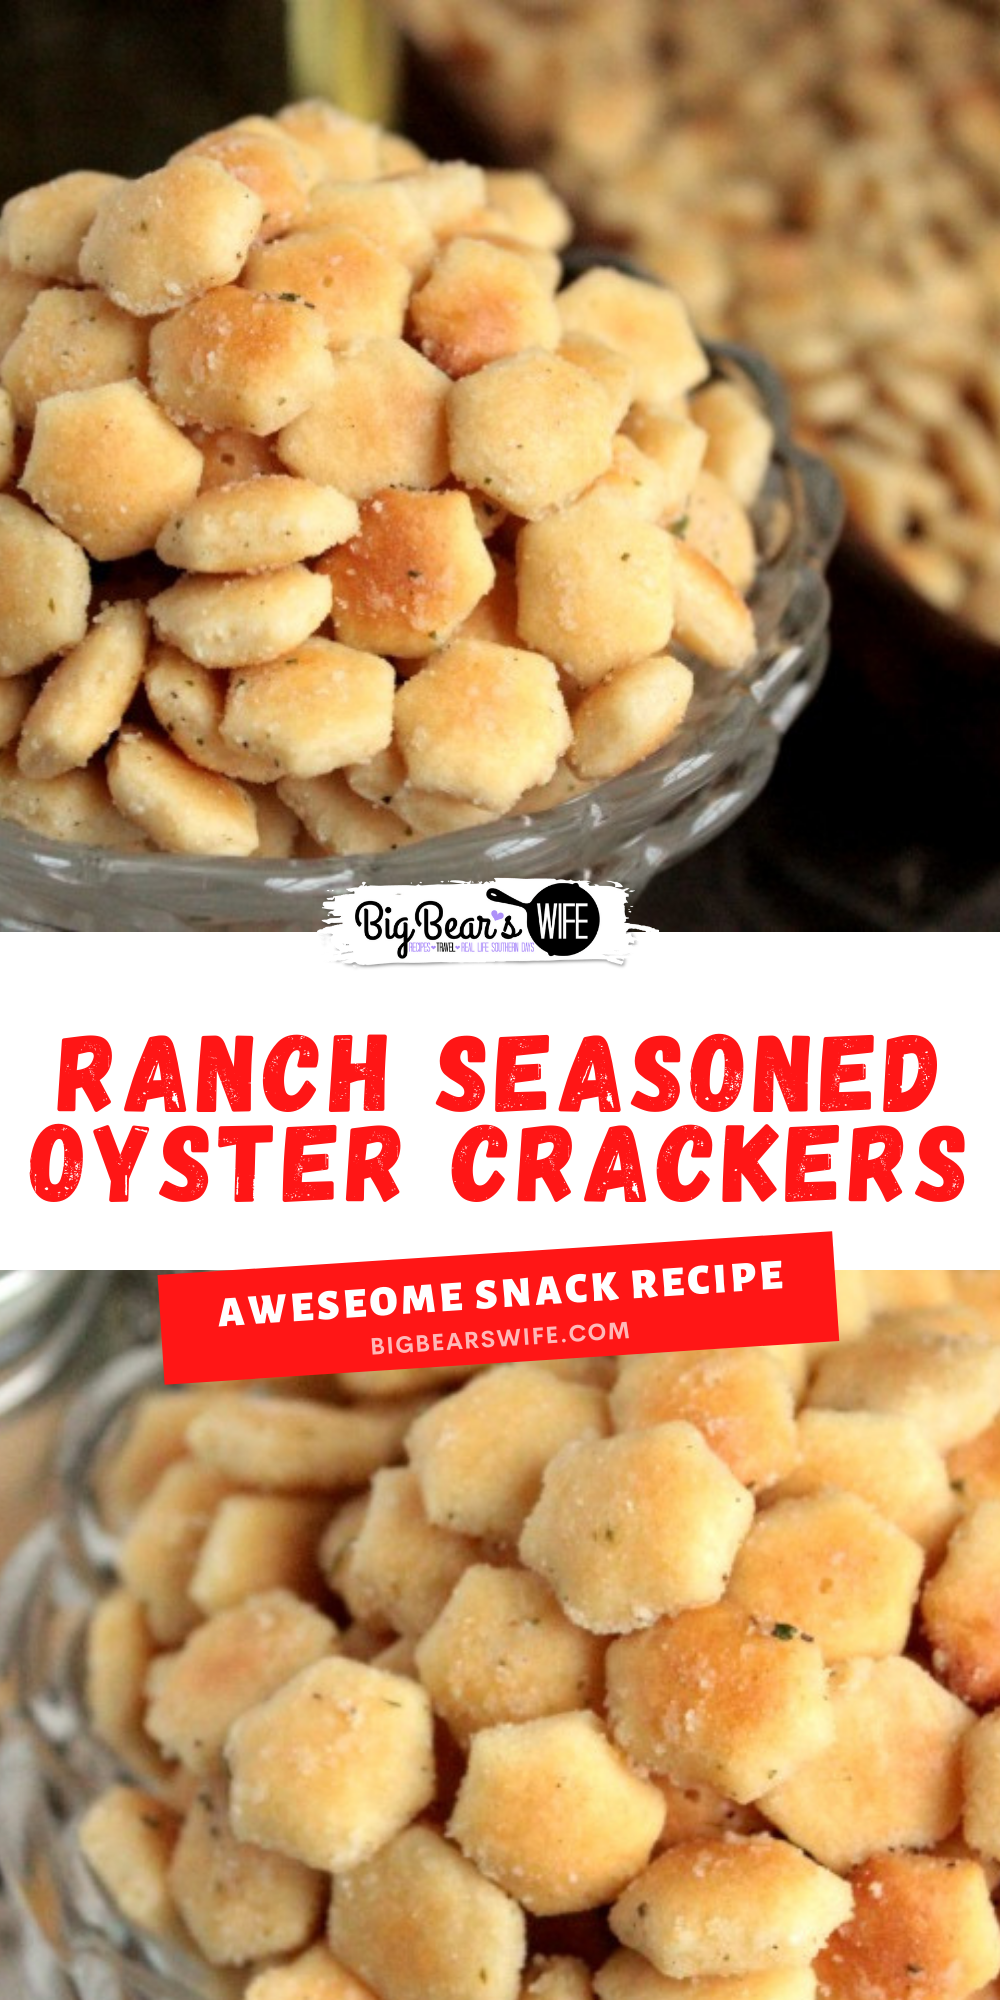 In need of a super simple dish to make for a party or just want to snack on a fun vintage recipe? These Ranch Seasoned Oyster Crackers are just what you need! Made with oyster crackers, ranch seasoning and a few more ingredients, these little crackers are delicious and super easy to make! via @bigbearswife